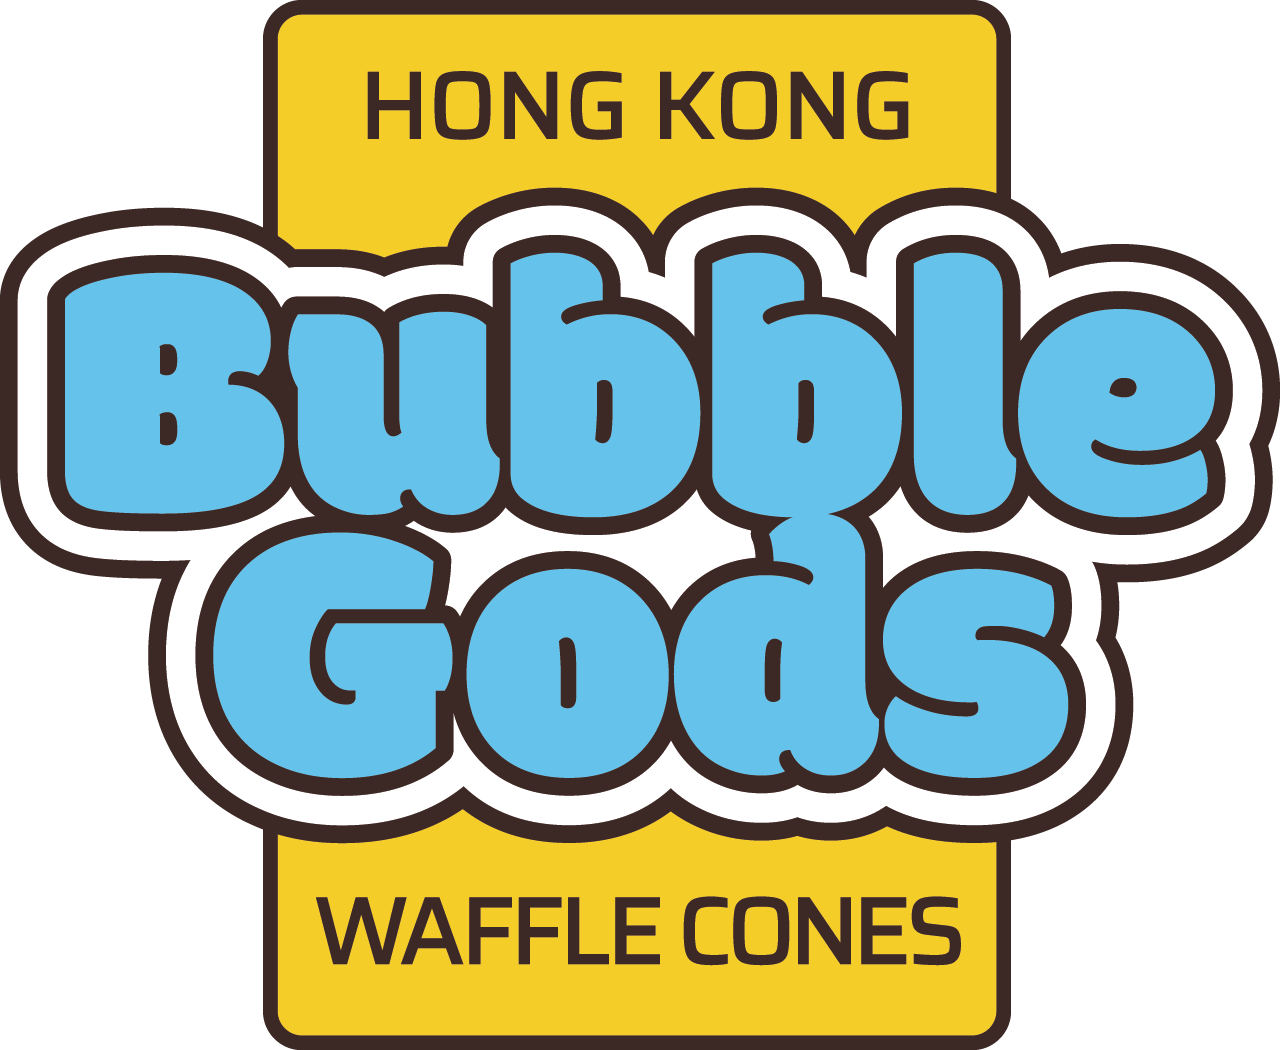 Branding design in London for street food vendor, Bubble Gods